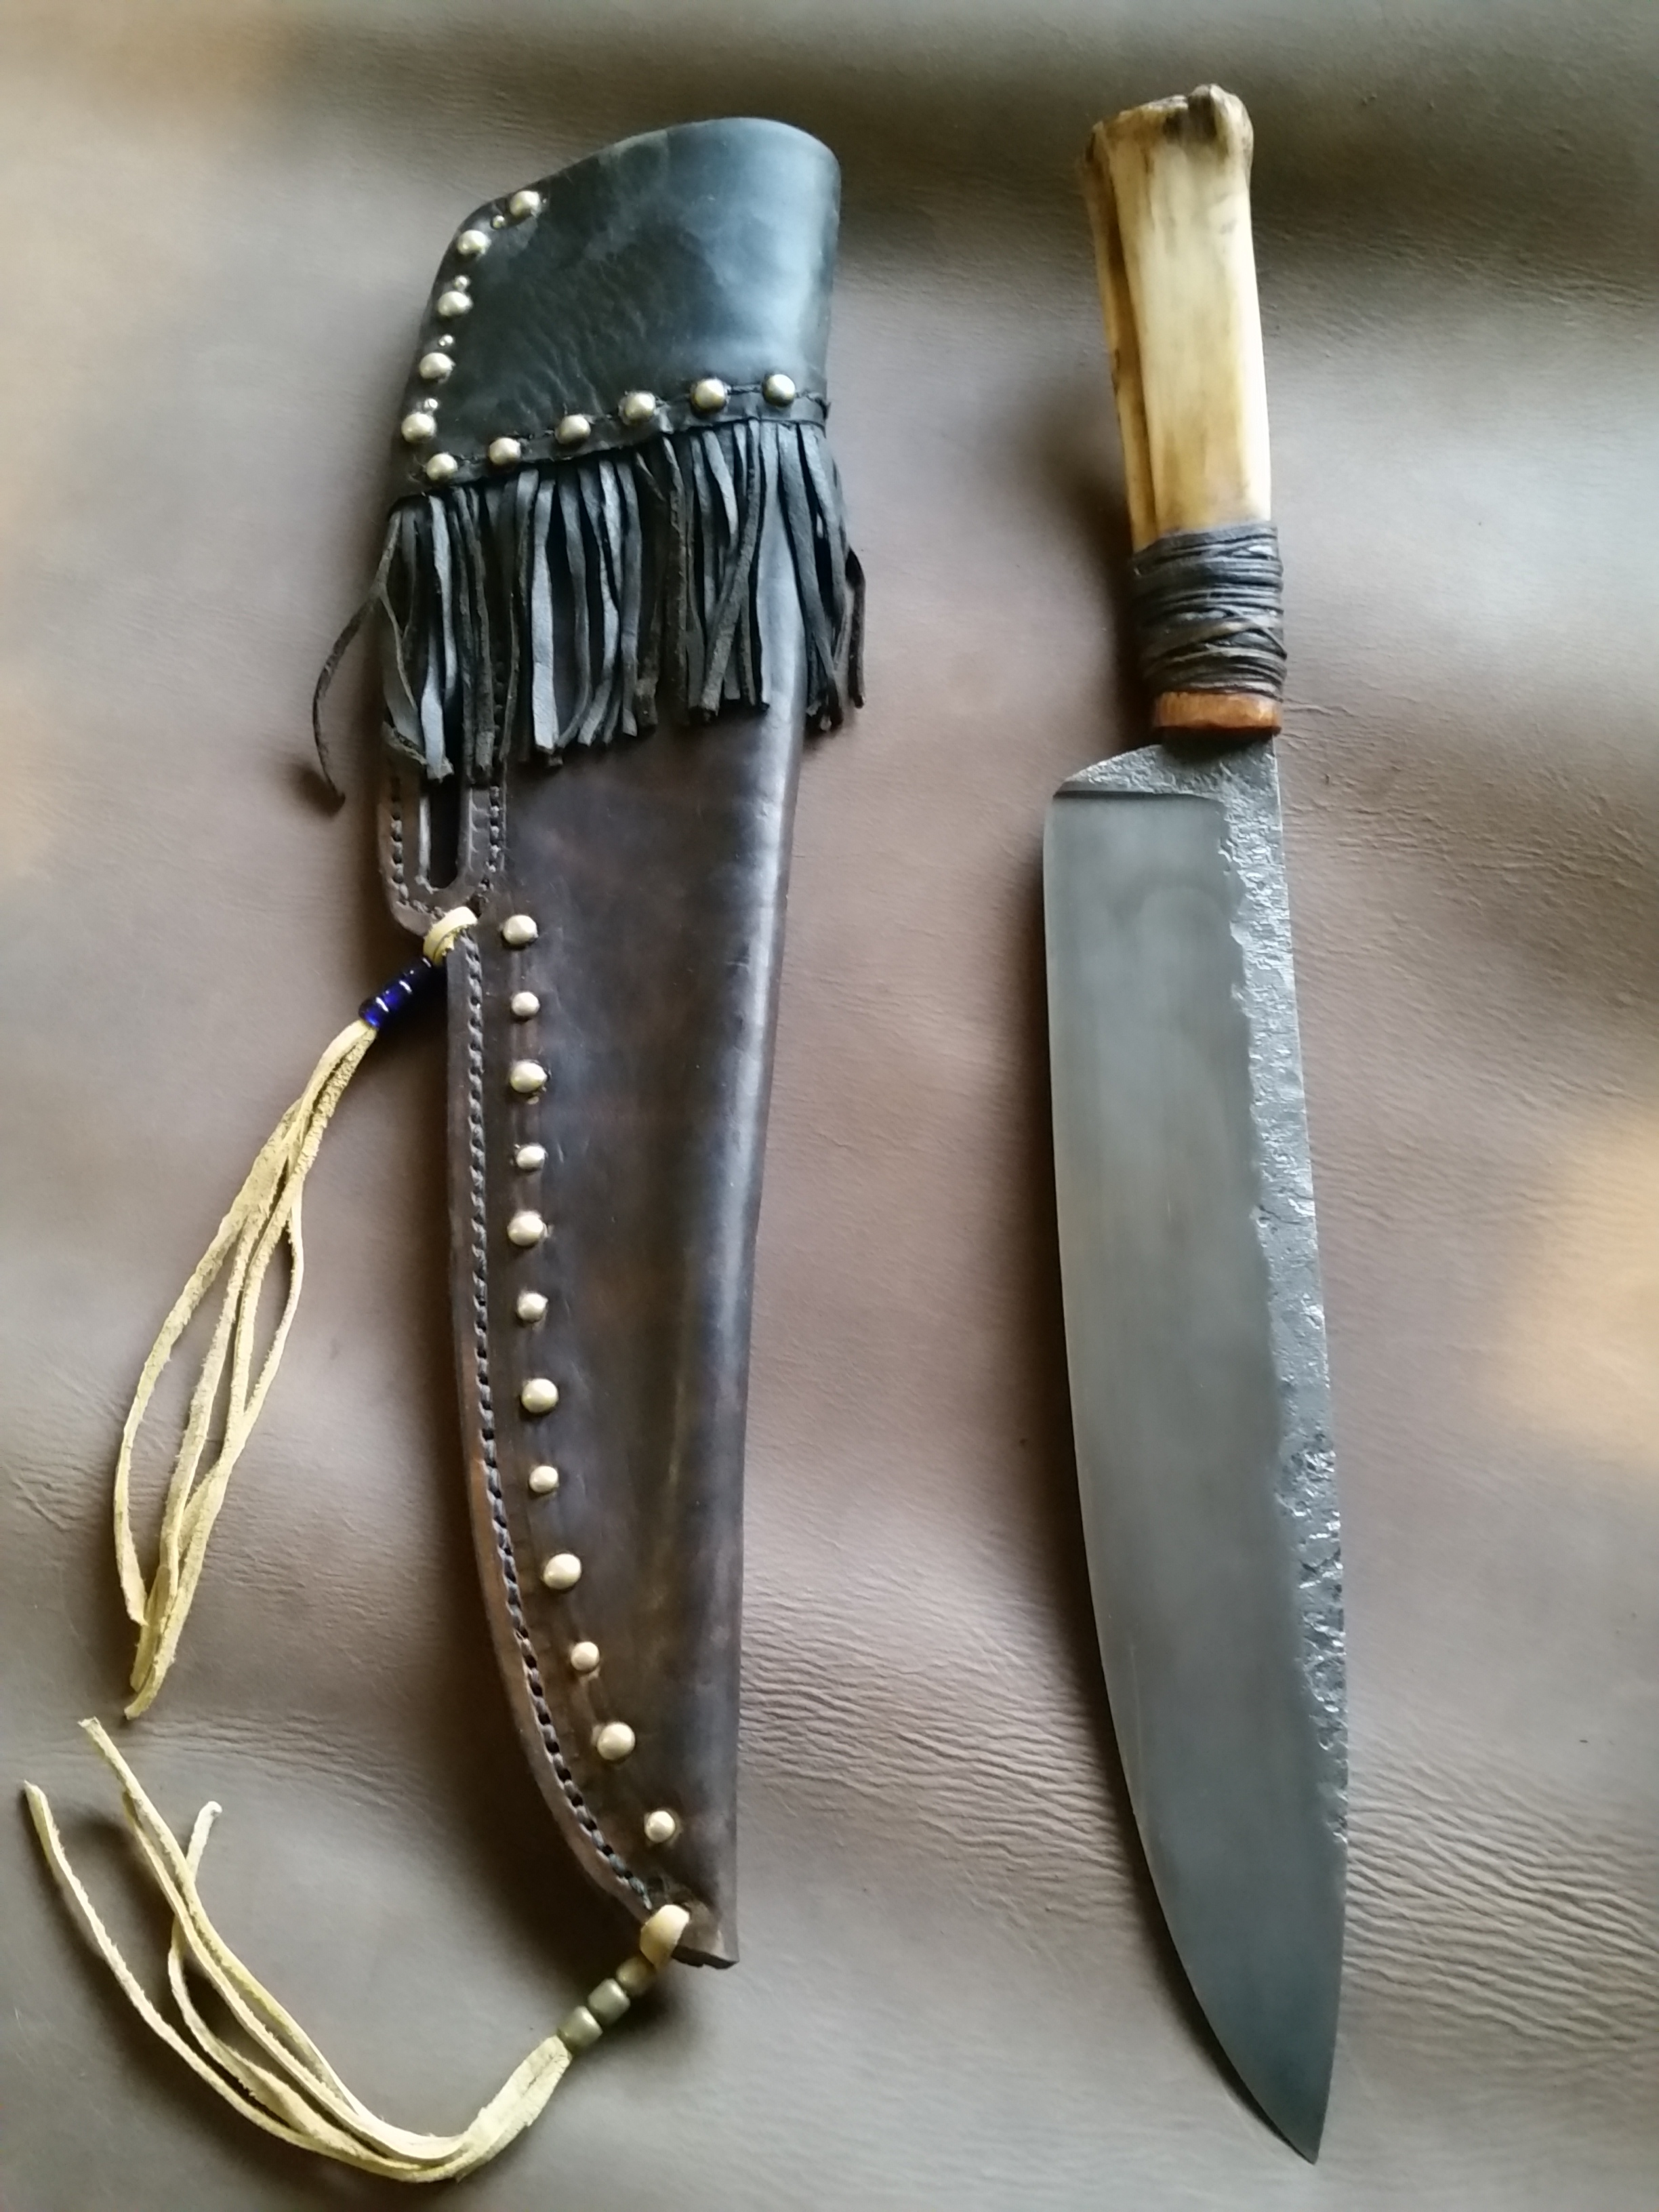 This is the second knife built by master knife maker  Steve Grosvenor.